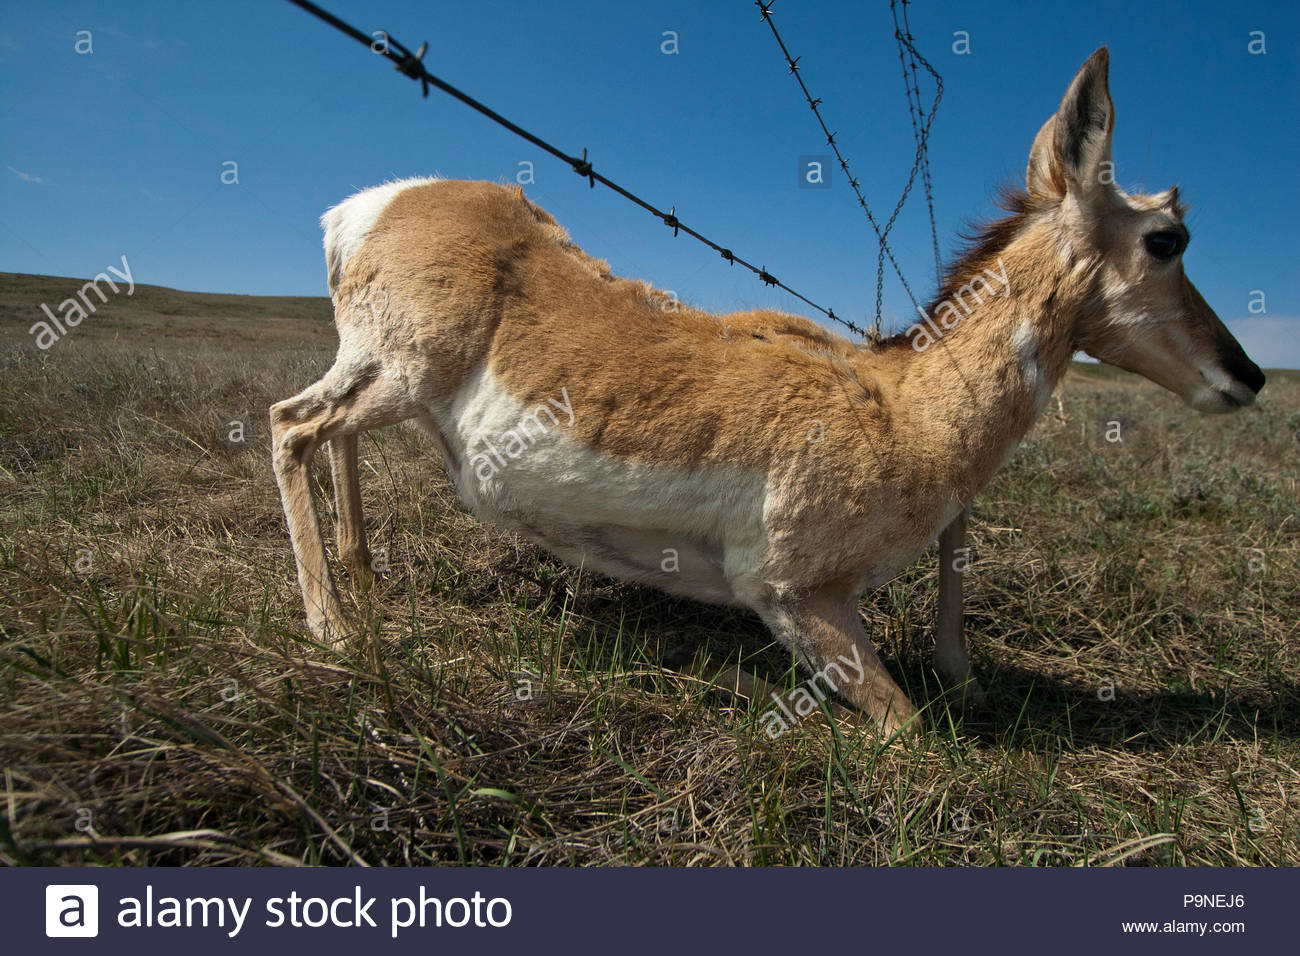 A pronghorn antelope sneaks under a barbed wire fence. - Stock Image